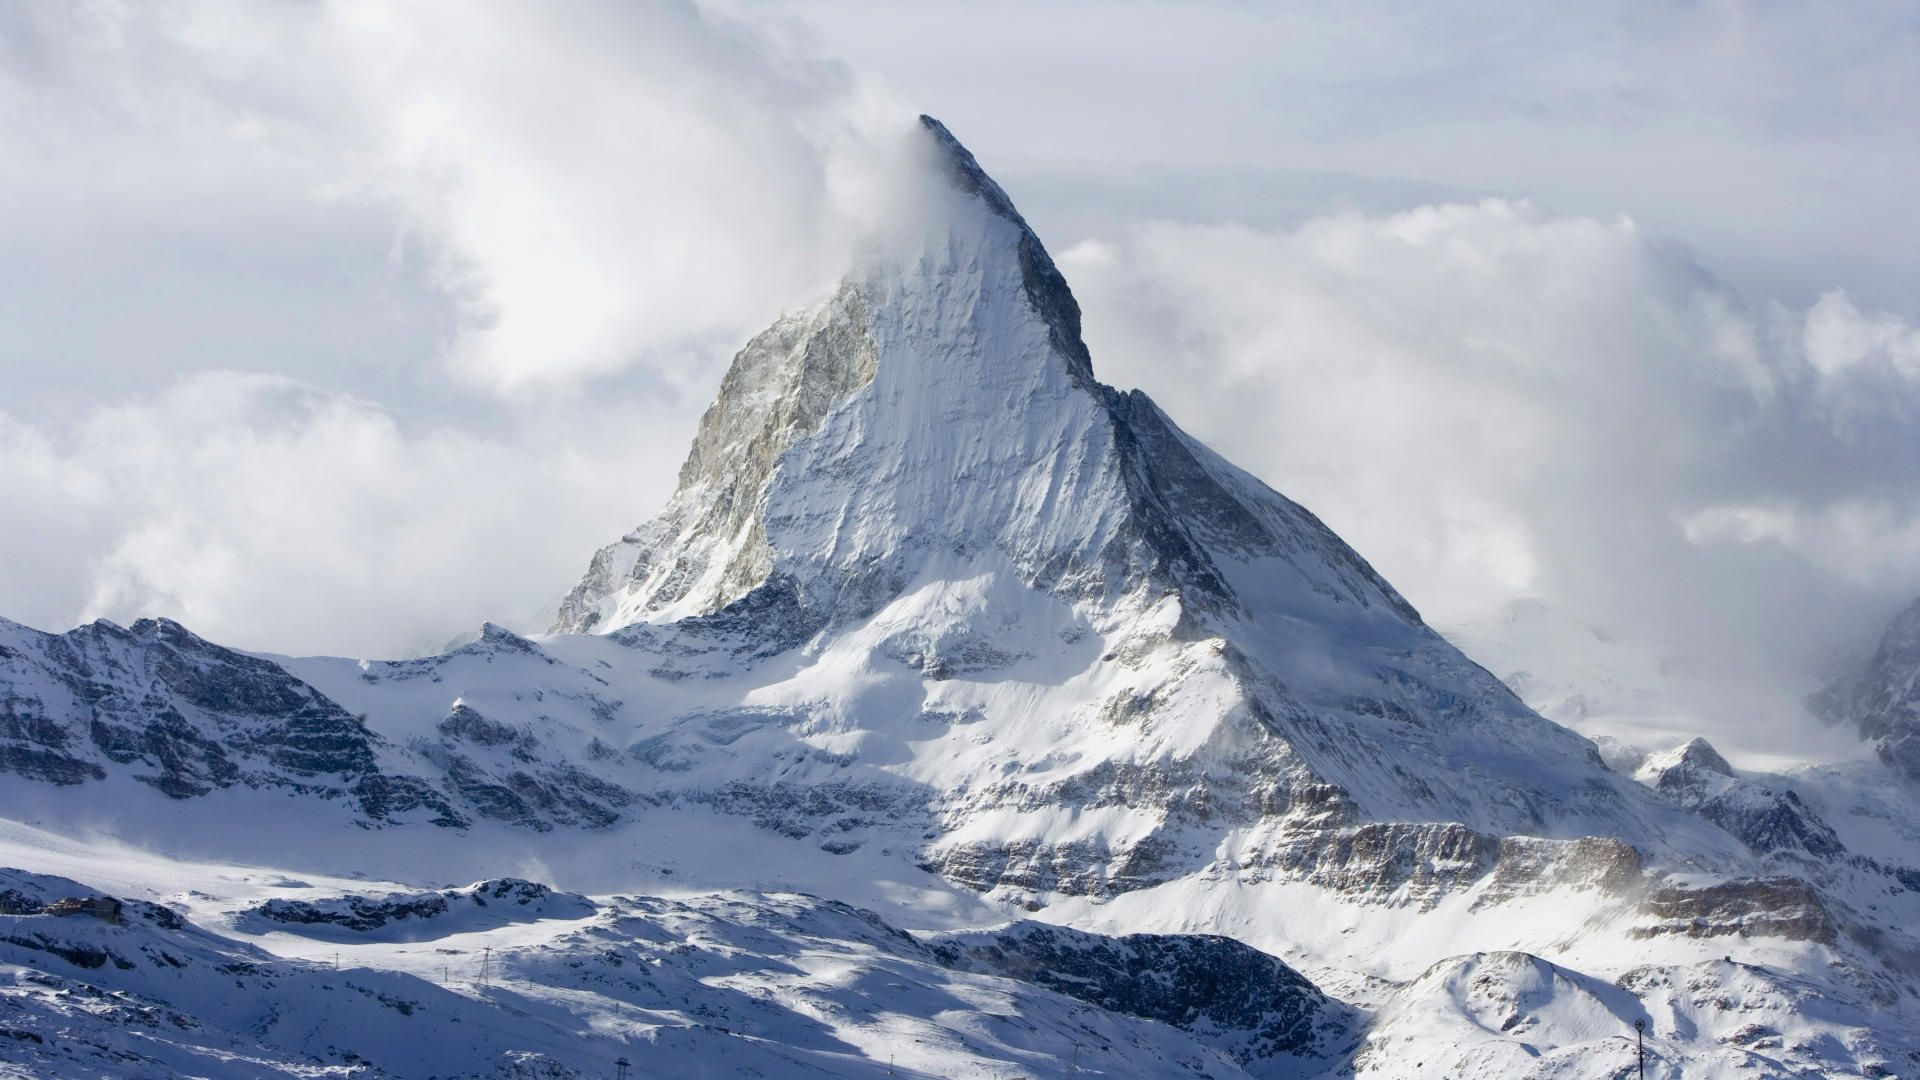 14, il Cervino Vinson Massif, Alps Switzerland, Zermatt, Nature Wallpaper, 1080p